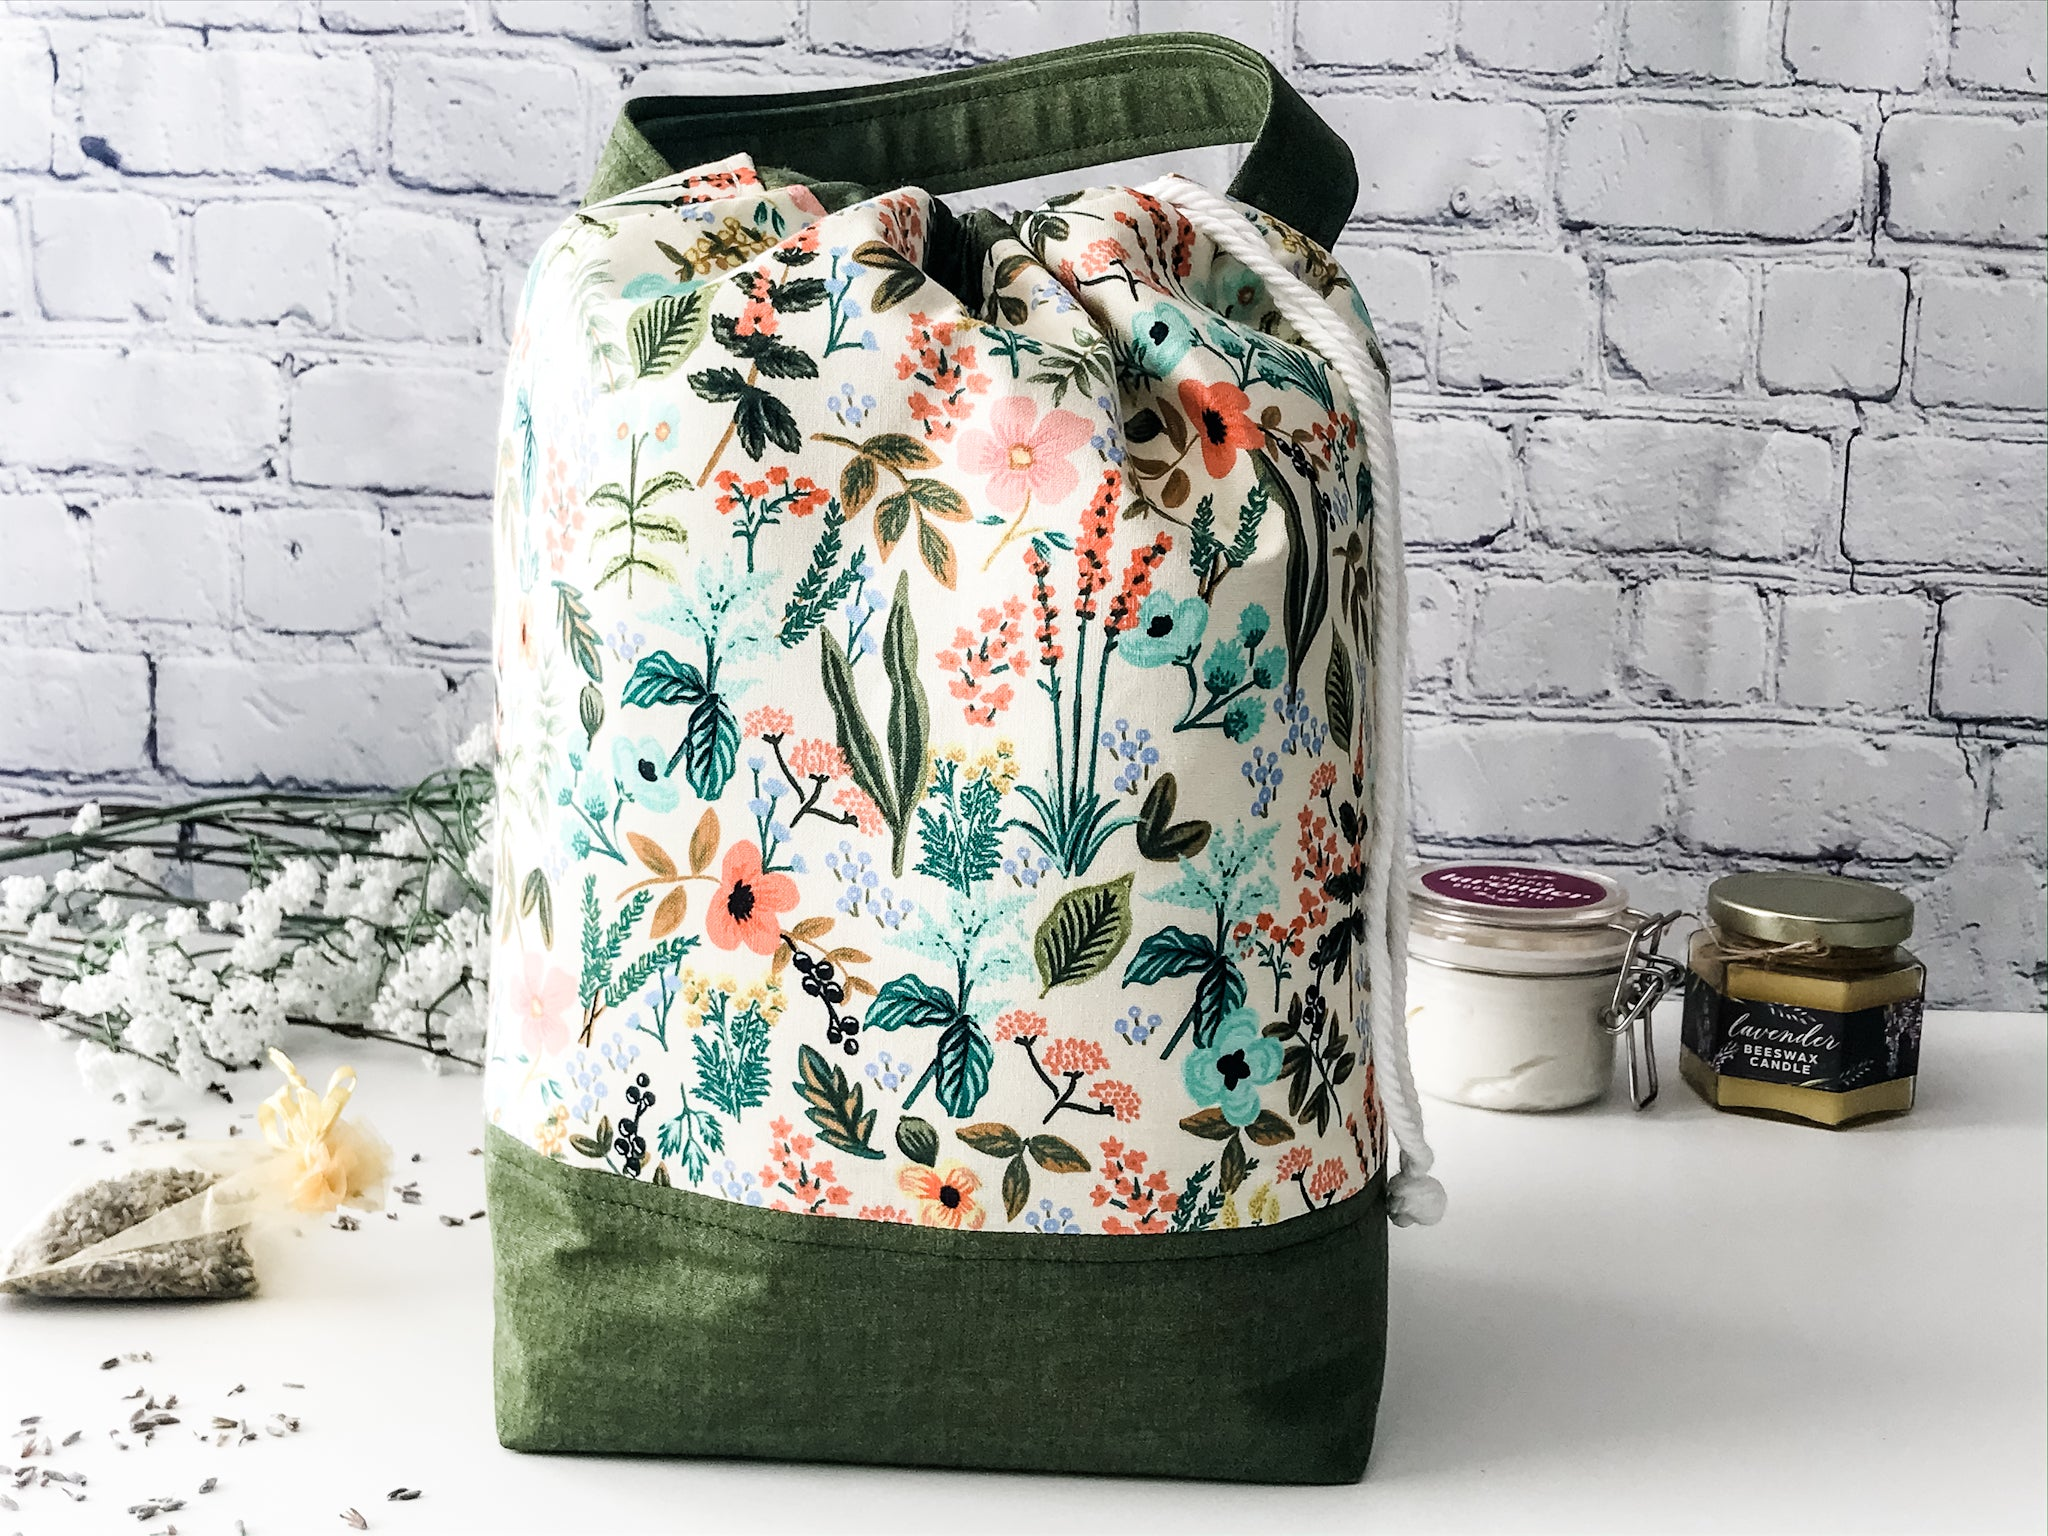 Claire's Herb Garden Grab n' Go Project Bag - The Handmaker's Bag